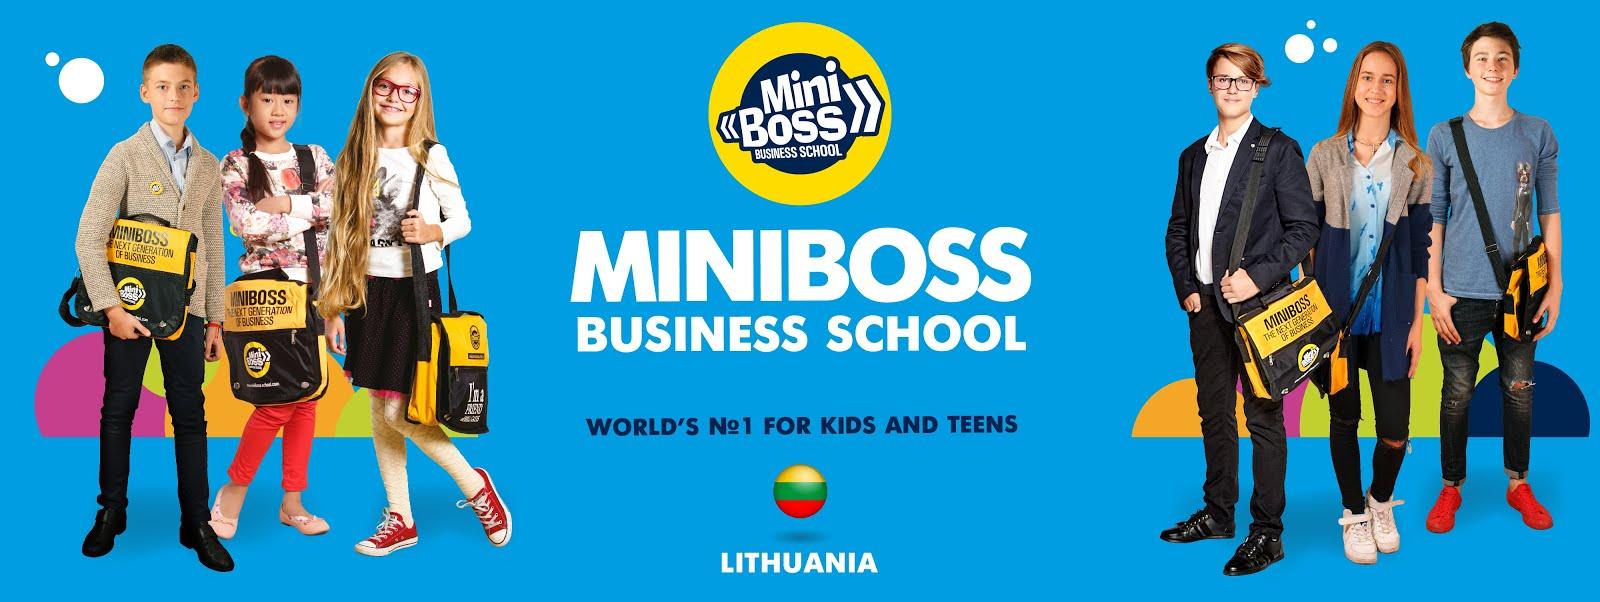 MINIBOSS BUSINESS SCHOOL (KAUNAS 1)